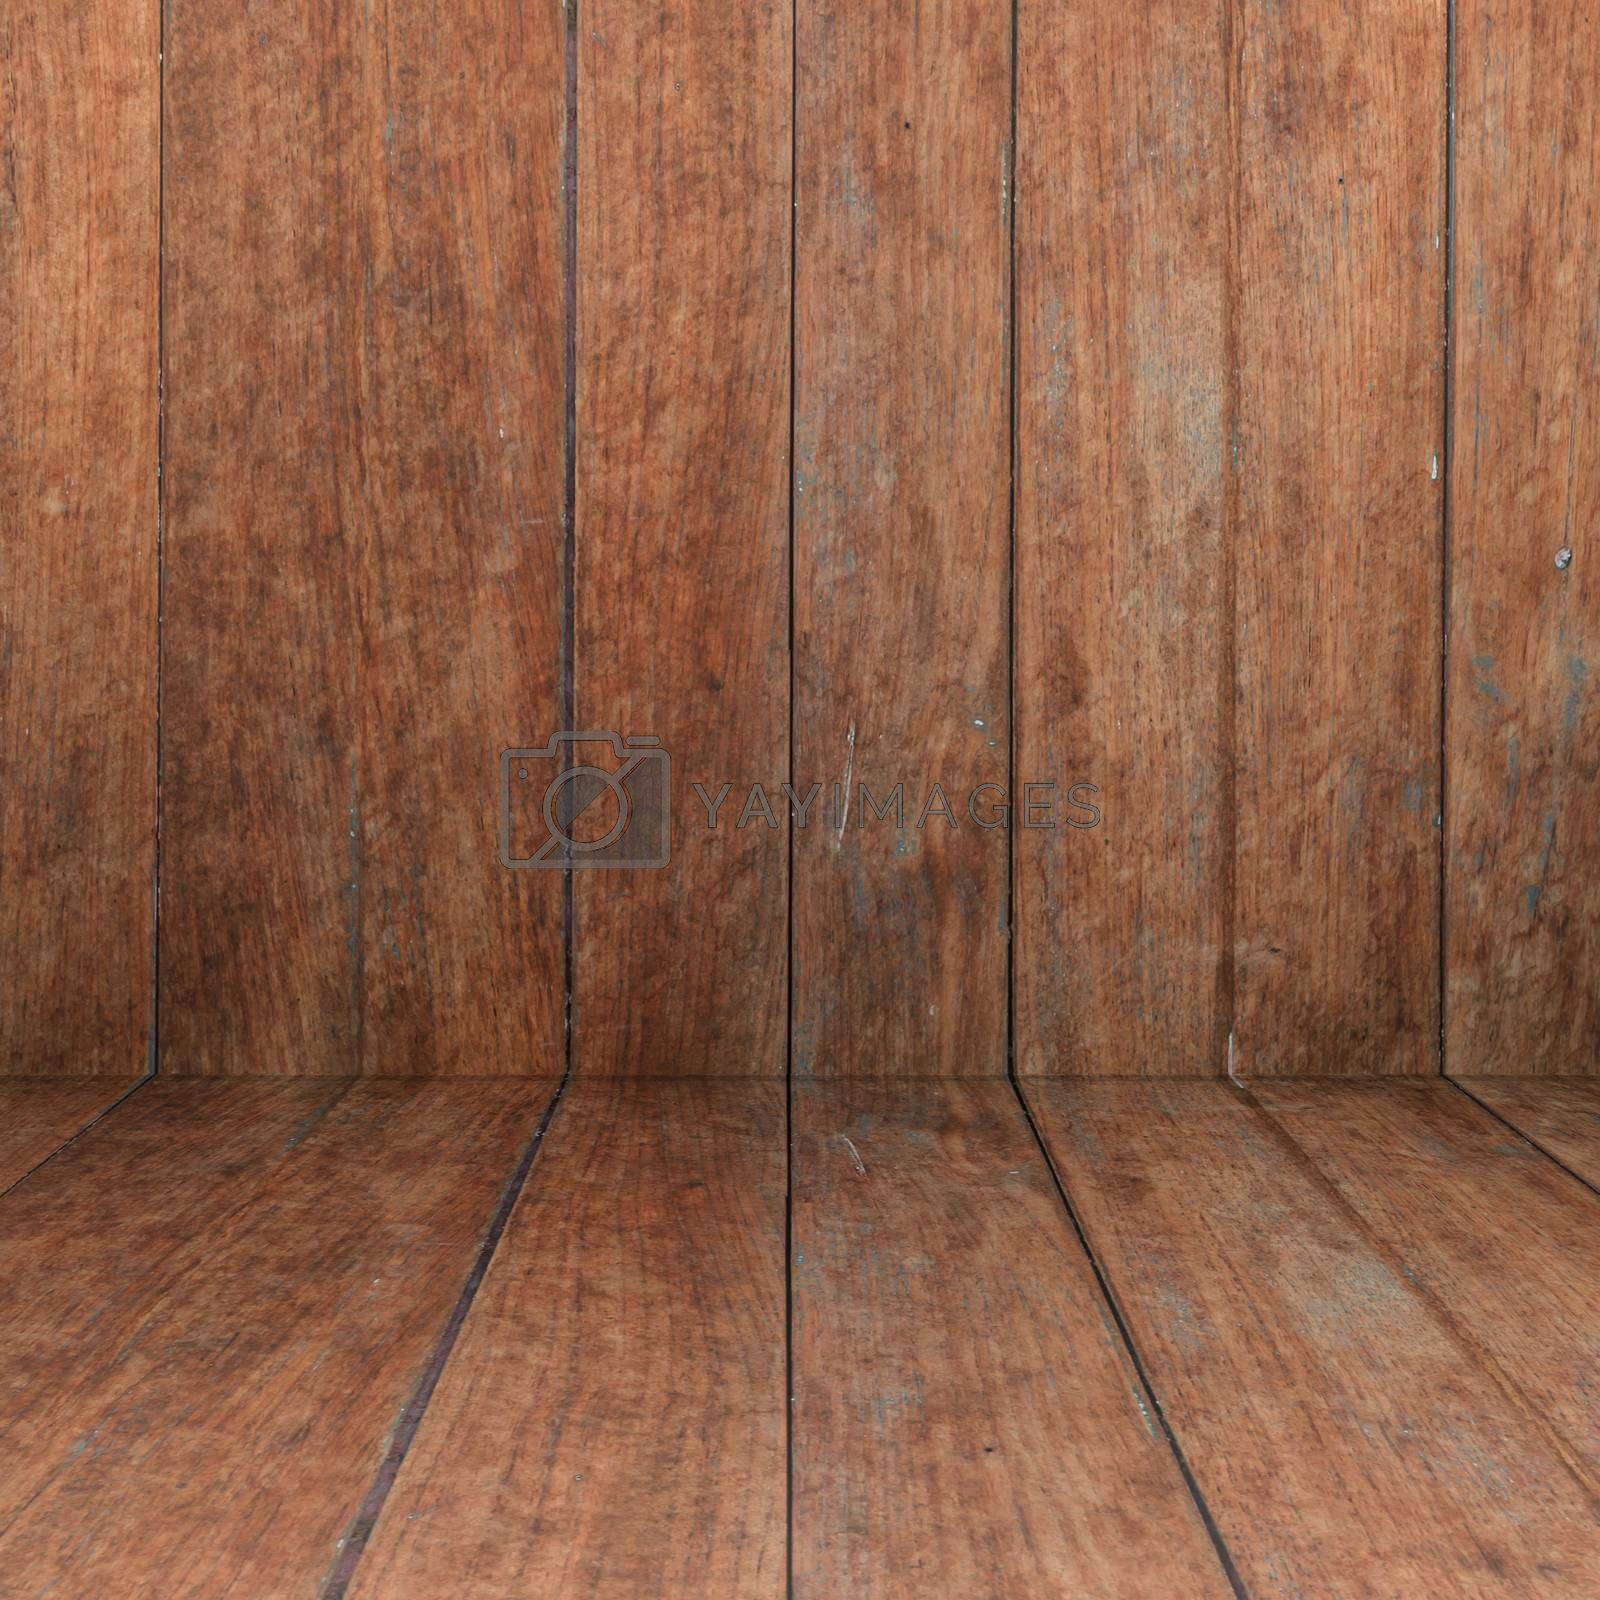 Perspective floor with wood panel background, stock photo